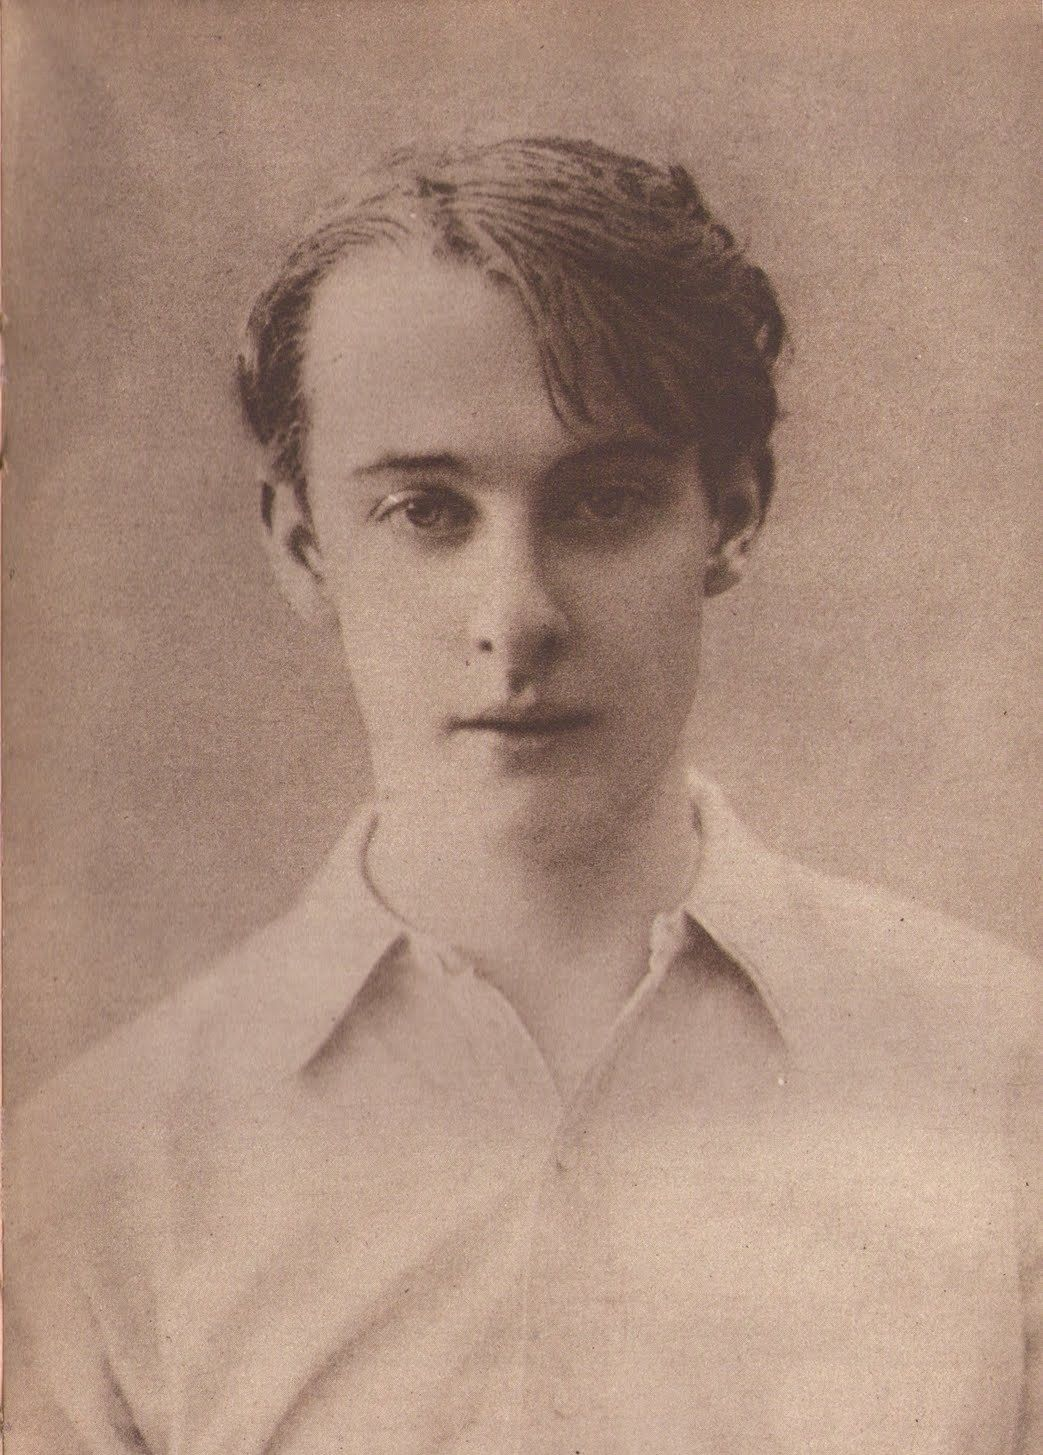 404 Not Found | Lord alfred douglas, Oscar wilde, Bosie